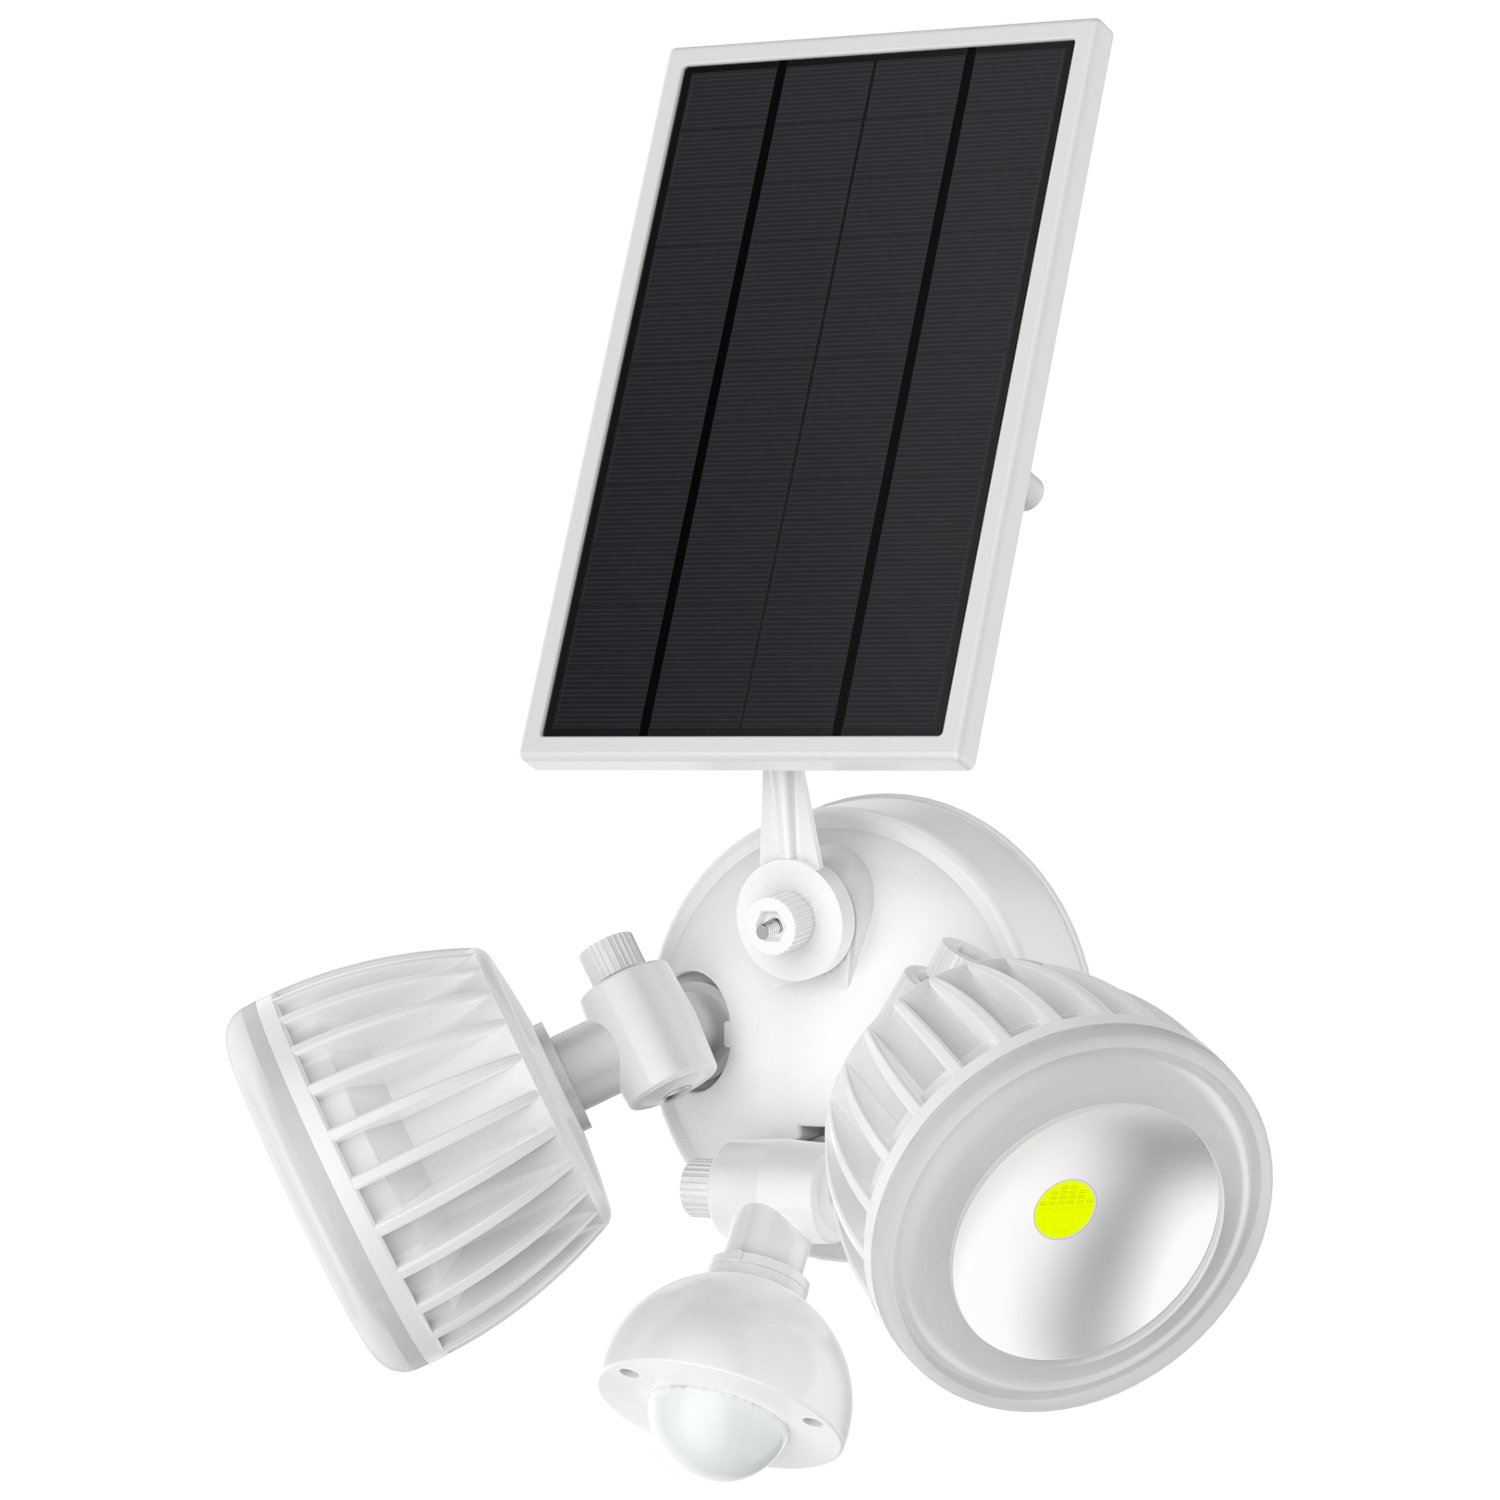 Solar Motion Sensor Light Outdoor,Takusun Adjustable Dual Head 10W COB 1000Lumens IP65 Waterproof Solar Powered LED Security Flood Light for Deck,Patio,Parking Lot,Porch,Garden,Garage,Entryways